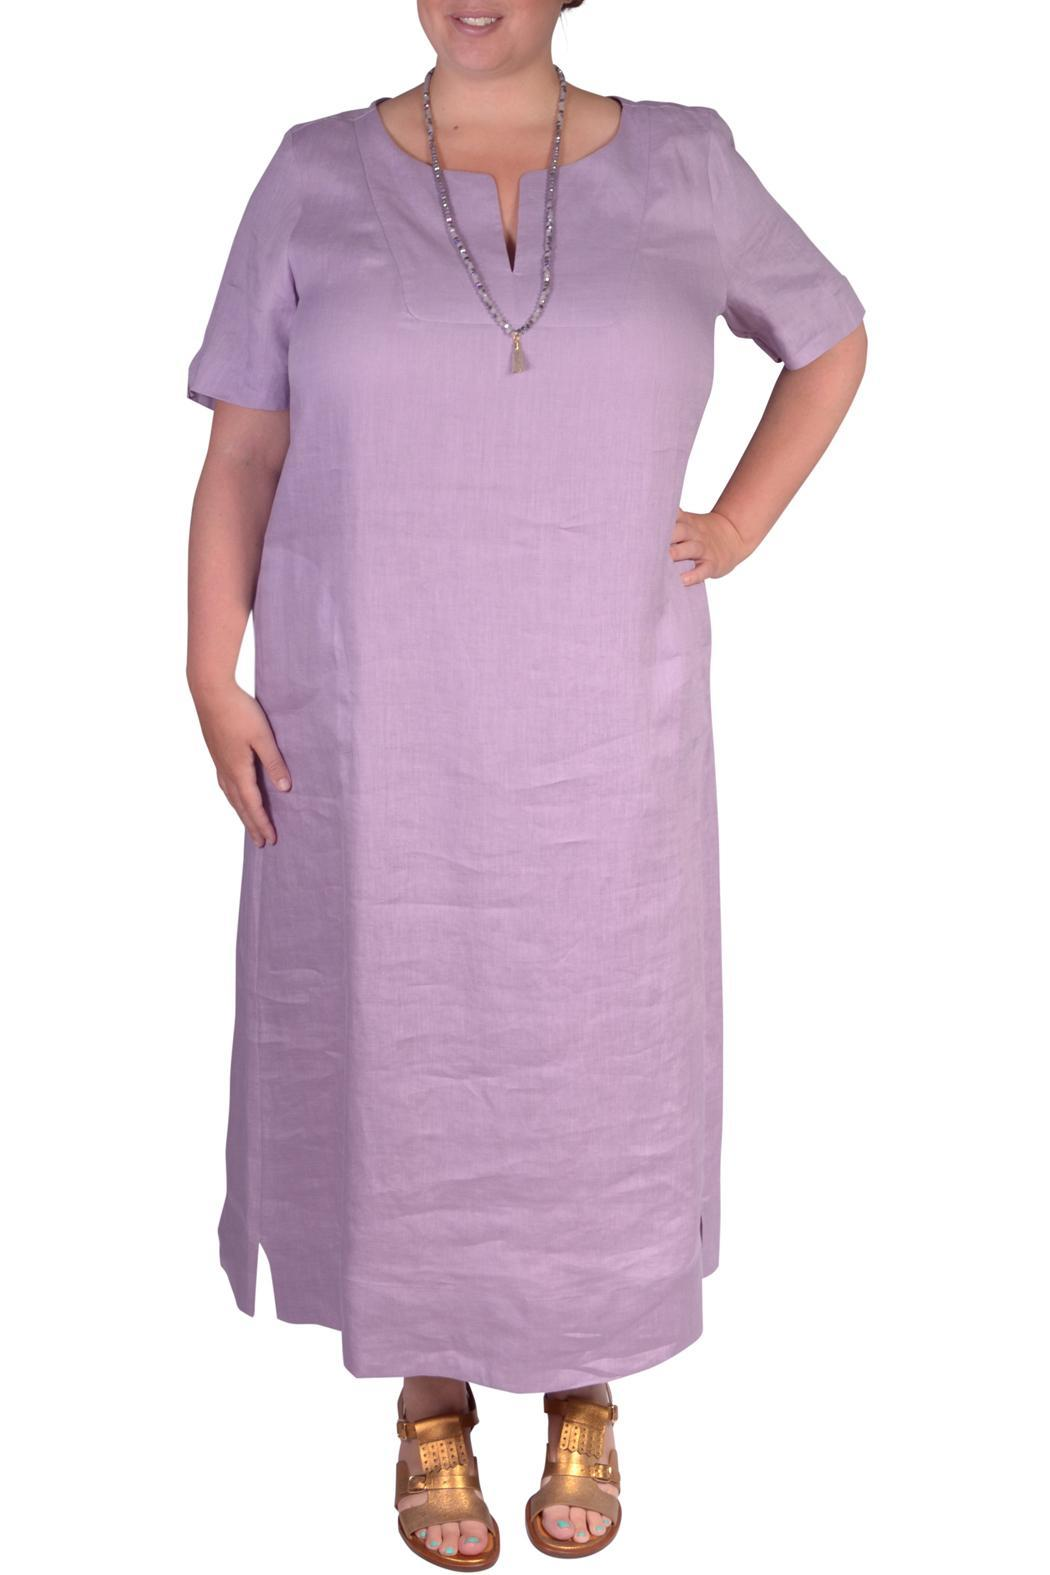 Marina Rinaldi Plus-Size Linen Dress from South East England ...